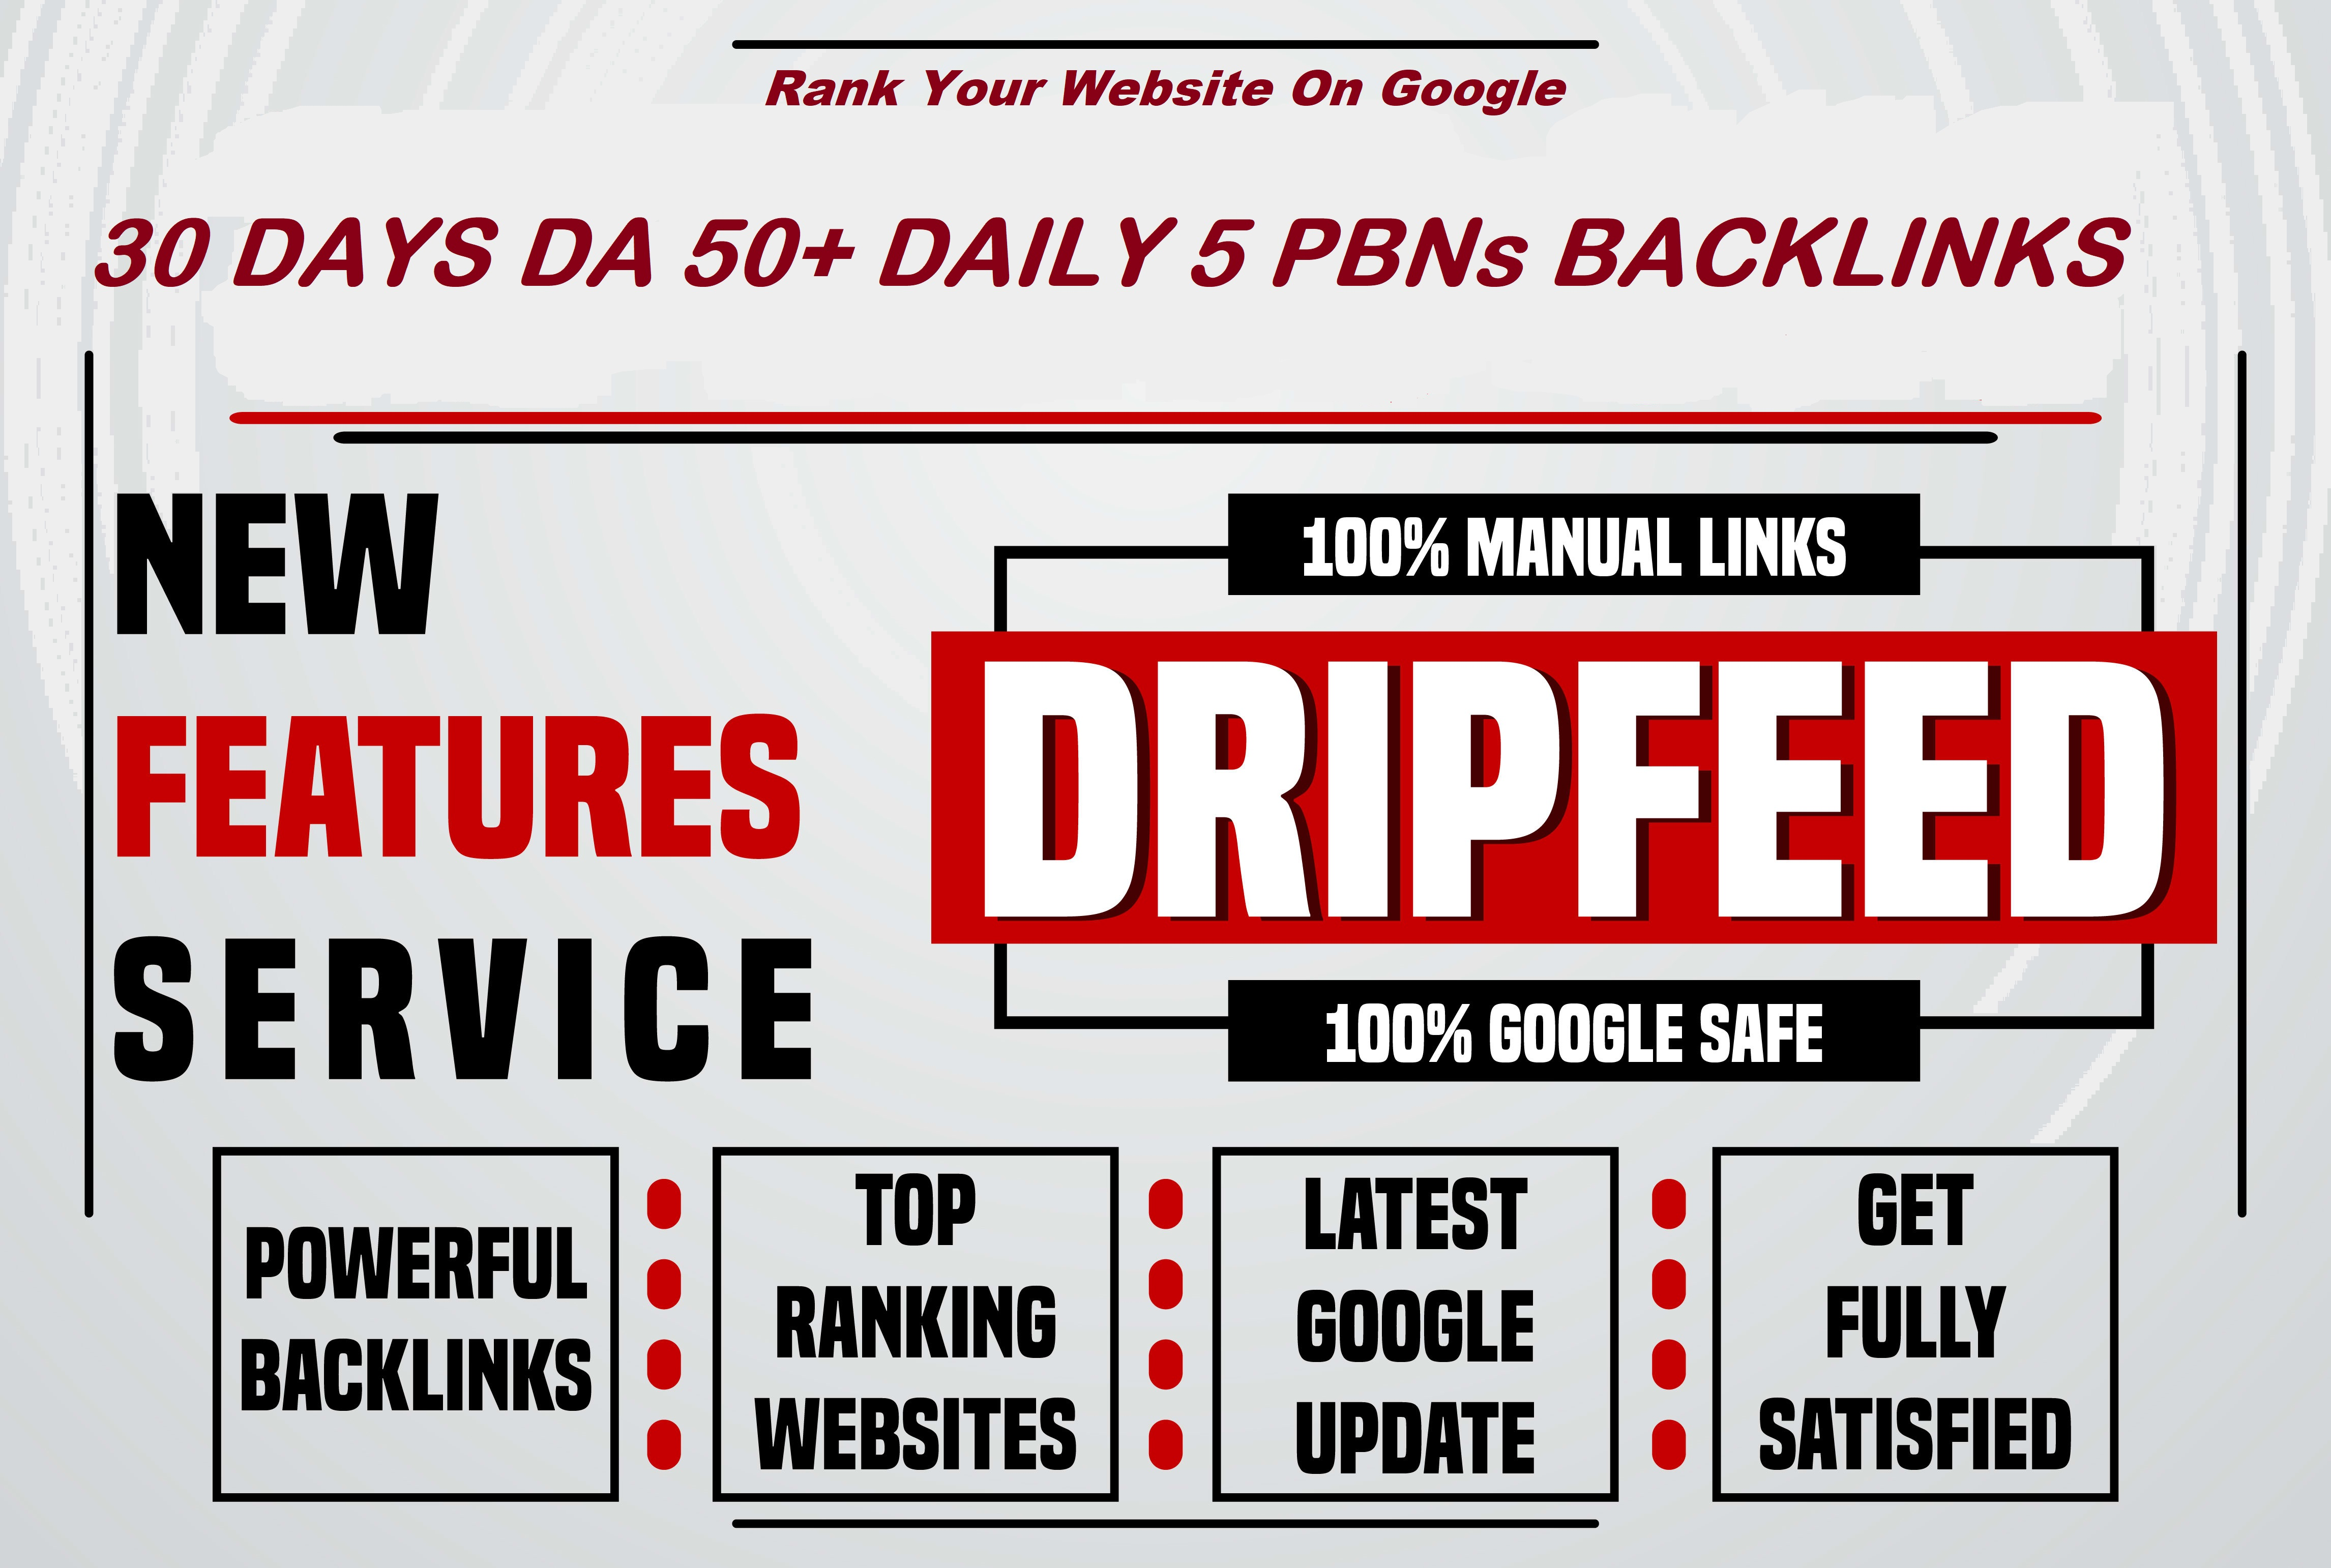 Rank Your Website In 30 Days With DA 50+ Pbn Backlinks Daily 5 Links All Unique Domains